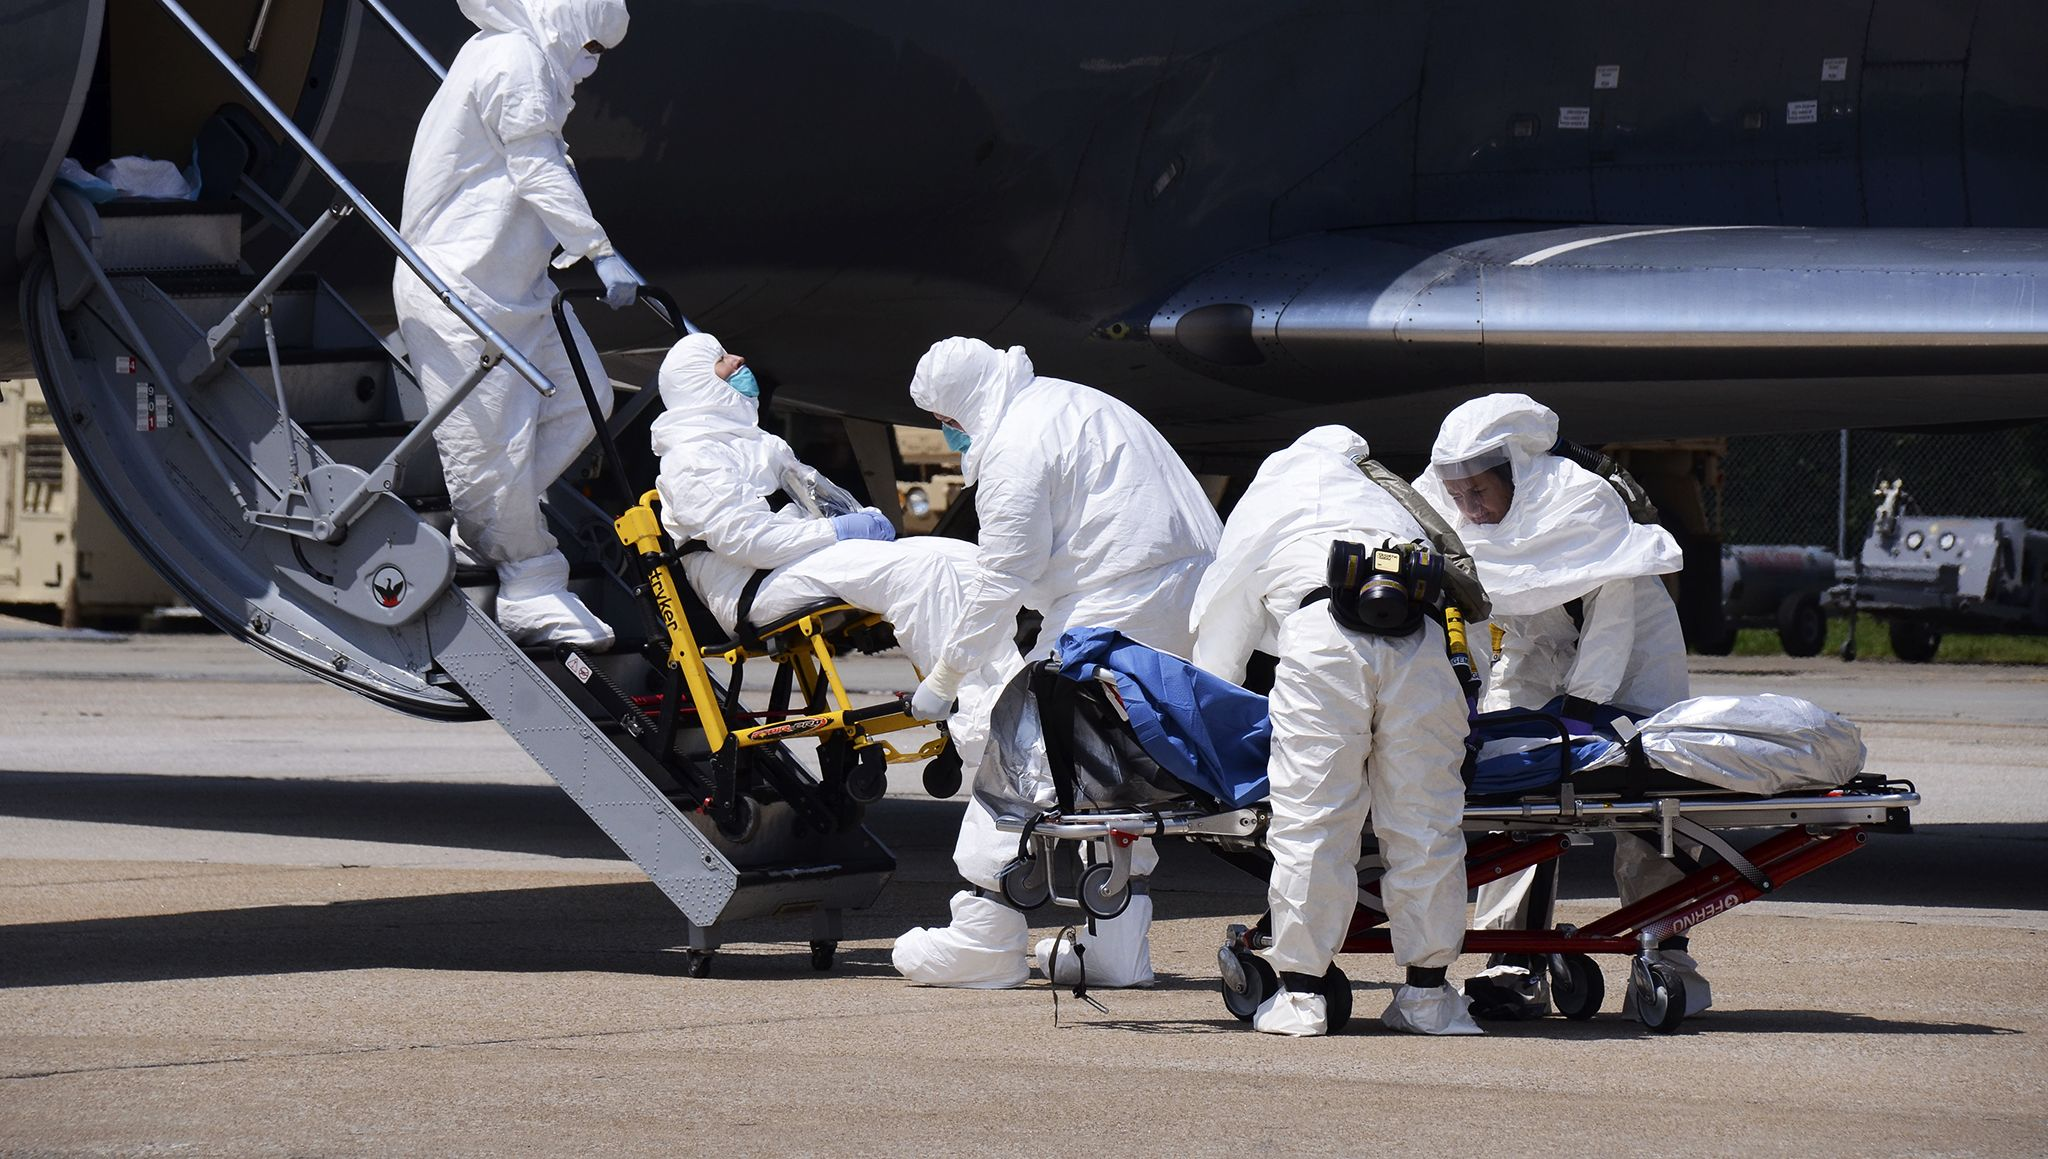 The Airplanes That Rescue Ebola Patients